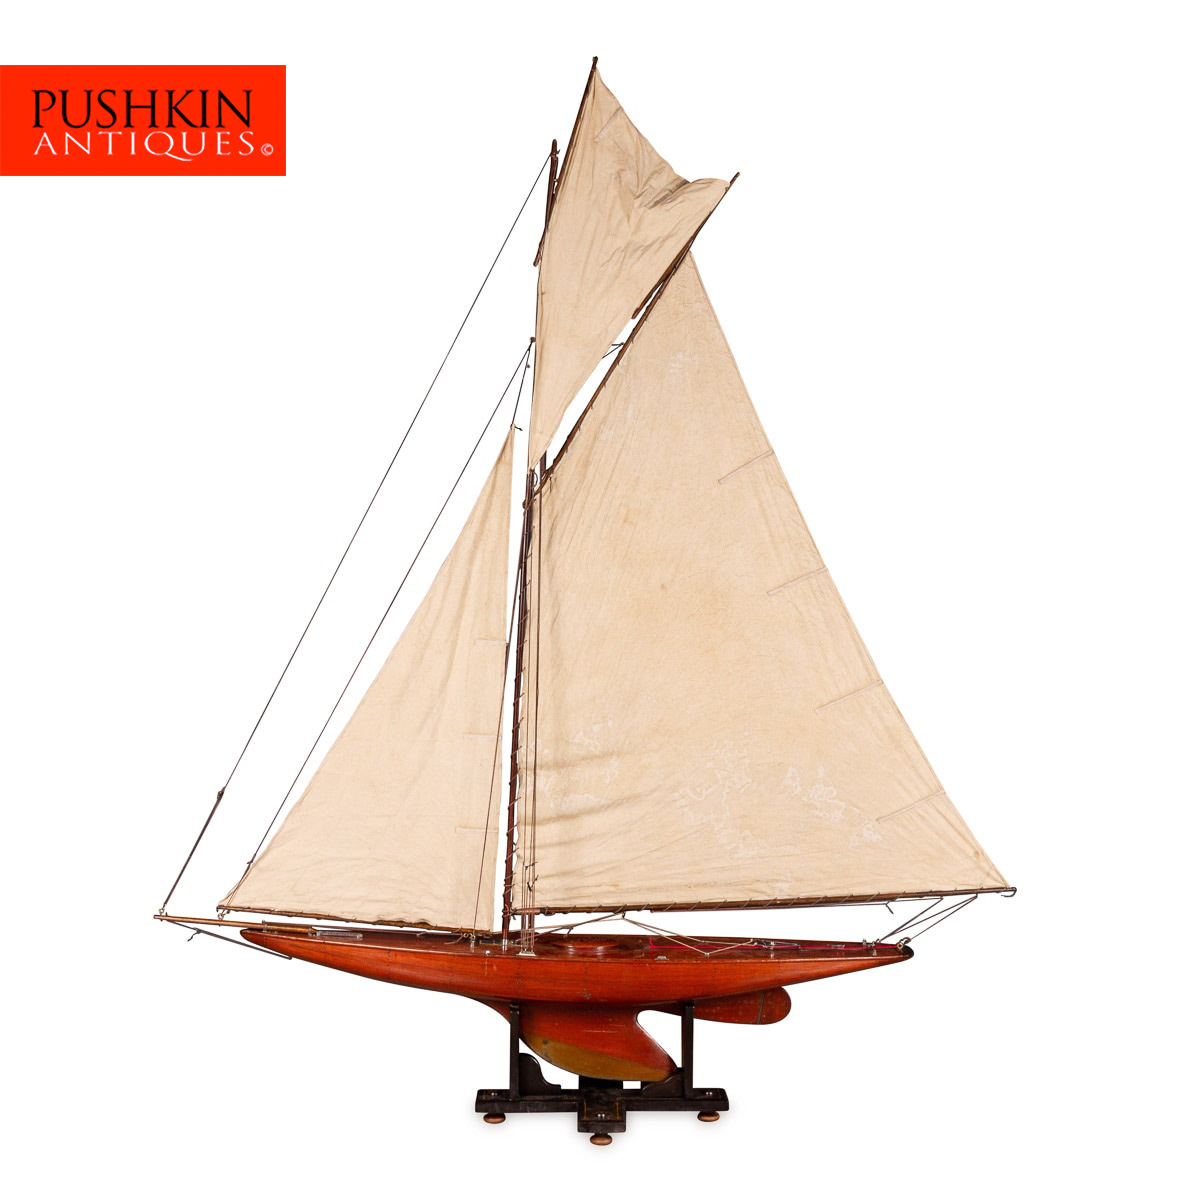 Pushkin Antiques — ANTIQUE 20thC ENGLISH GAFF RIGGED RACING POND YACHT  c 1920